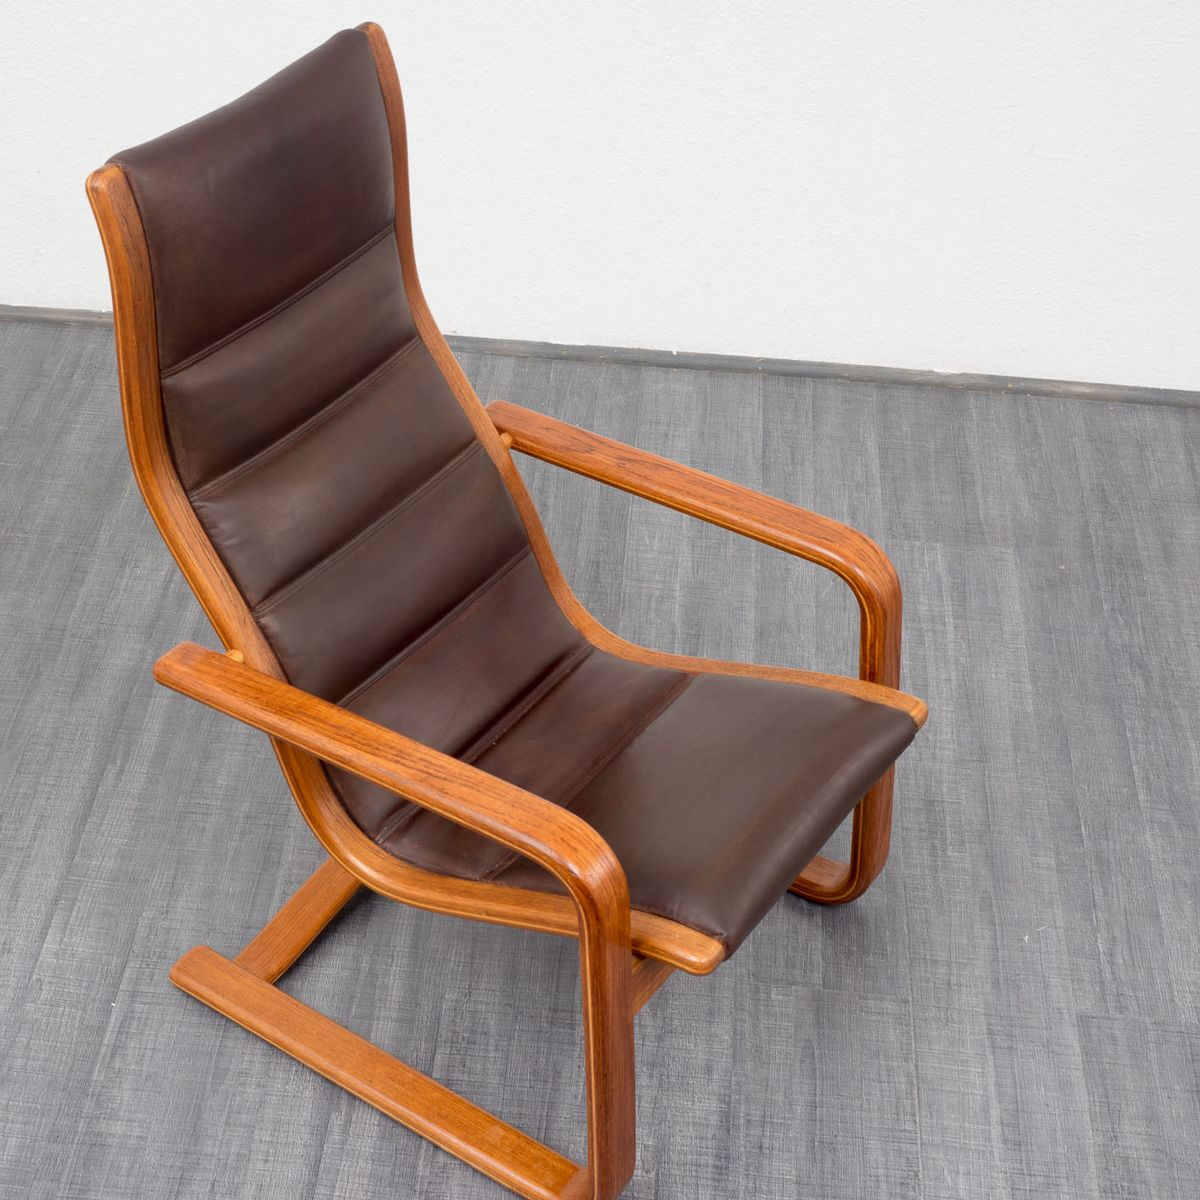 Lamello Lounge Chair with Footstool by Ingve Ekström for Swedese for sale at Pa